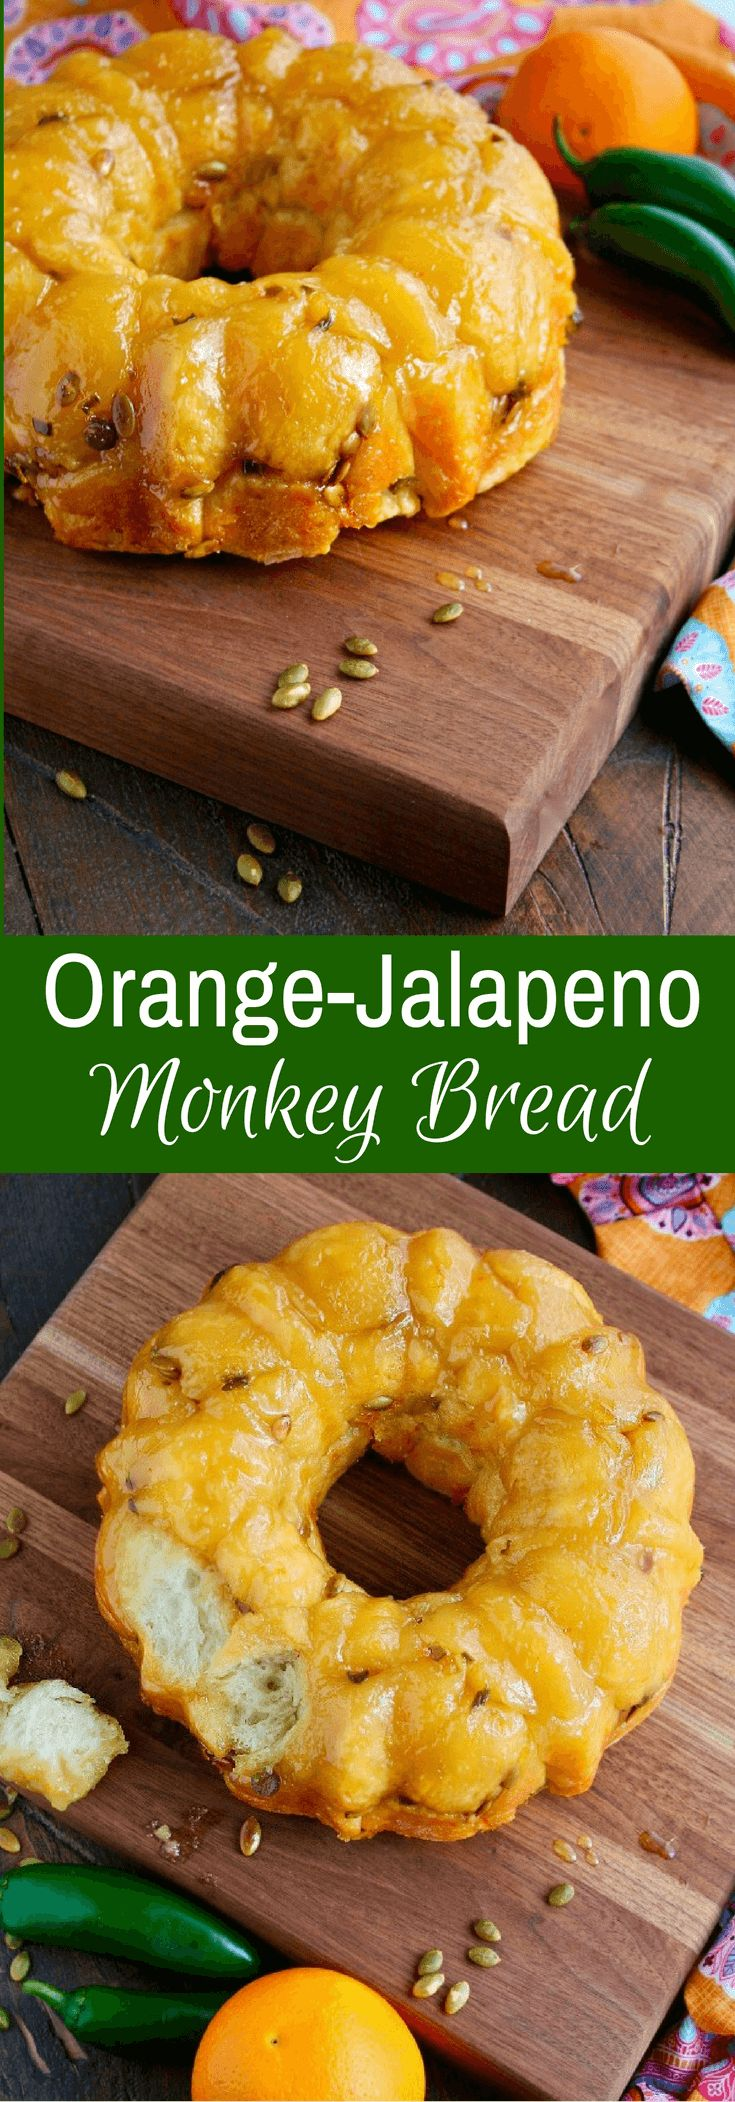 Looking for a fun treat with fabulous flavor? Try Orange-Jalapeño Monkey Bread with Pepitas!